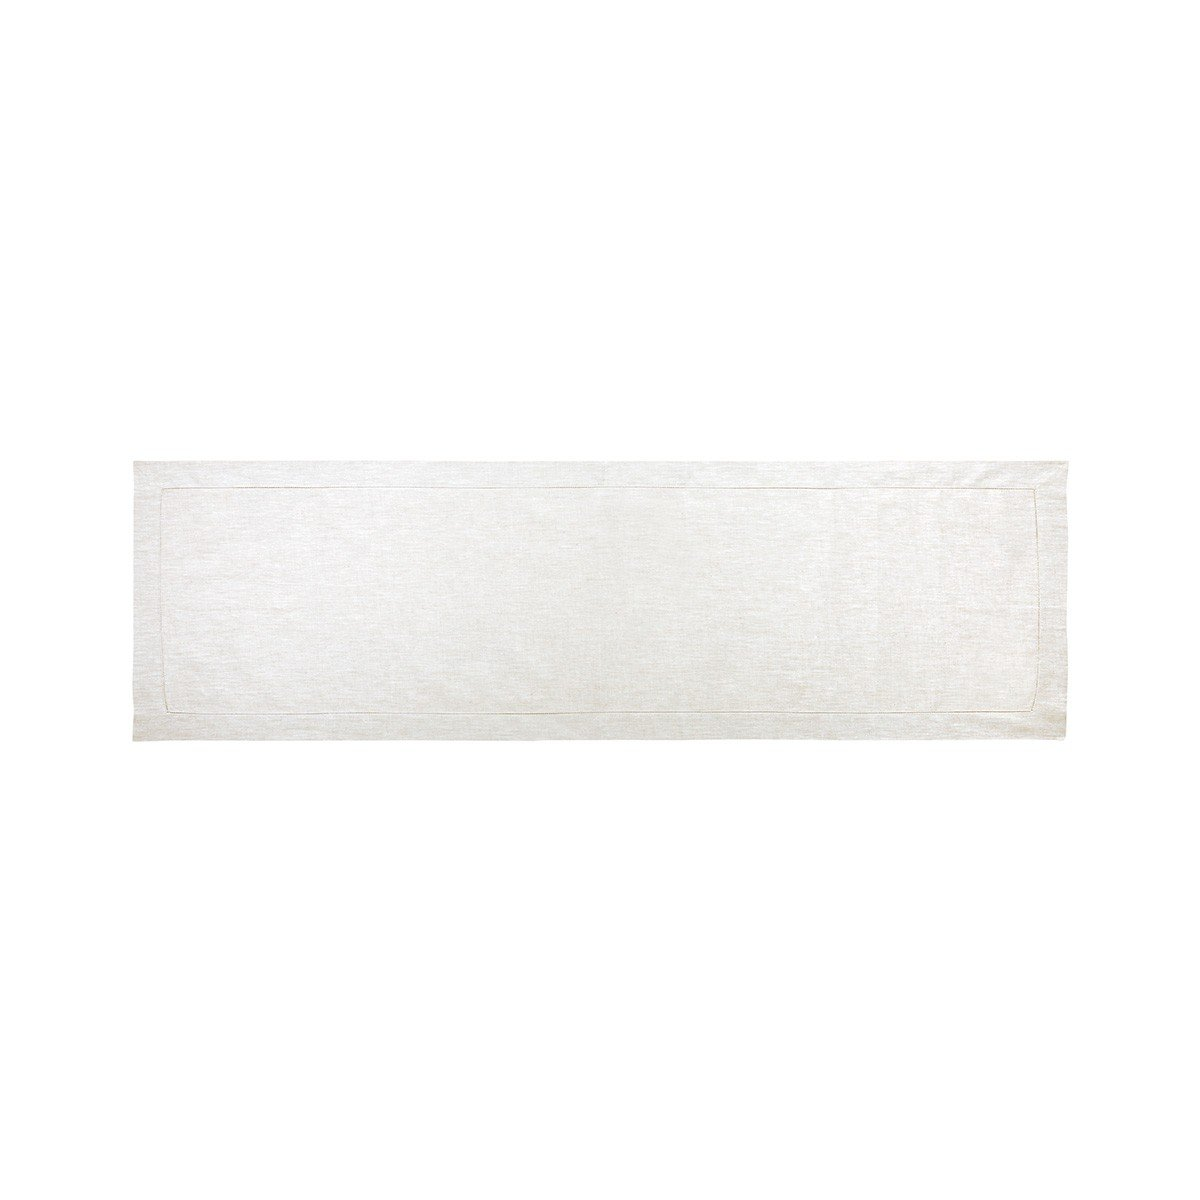 Liso Pierre Table Linens by Yves Delorme Fig Linens table runner